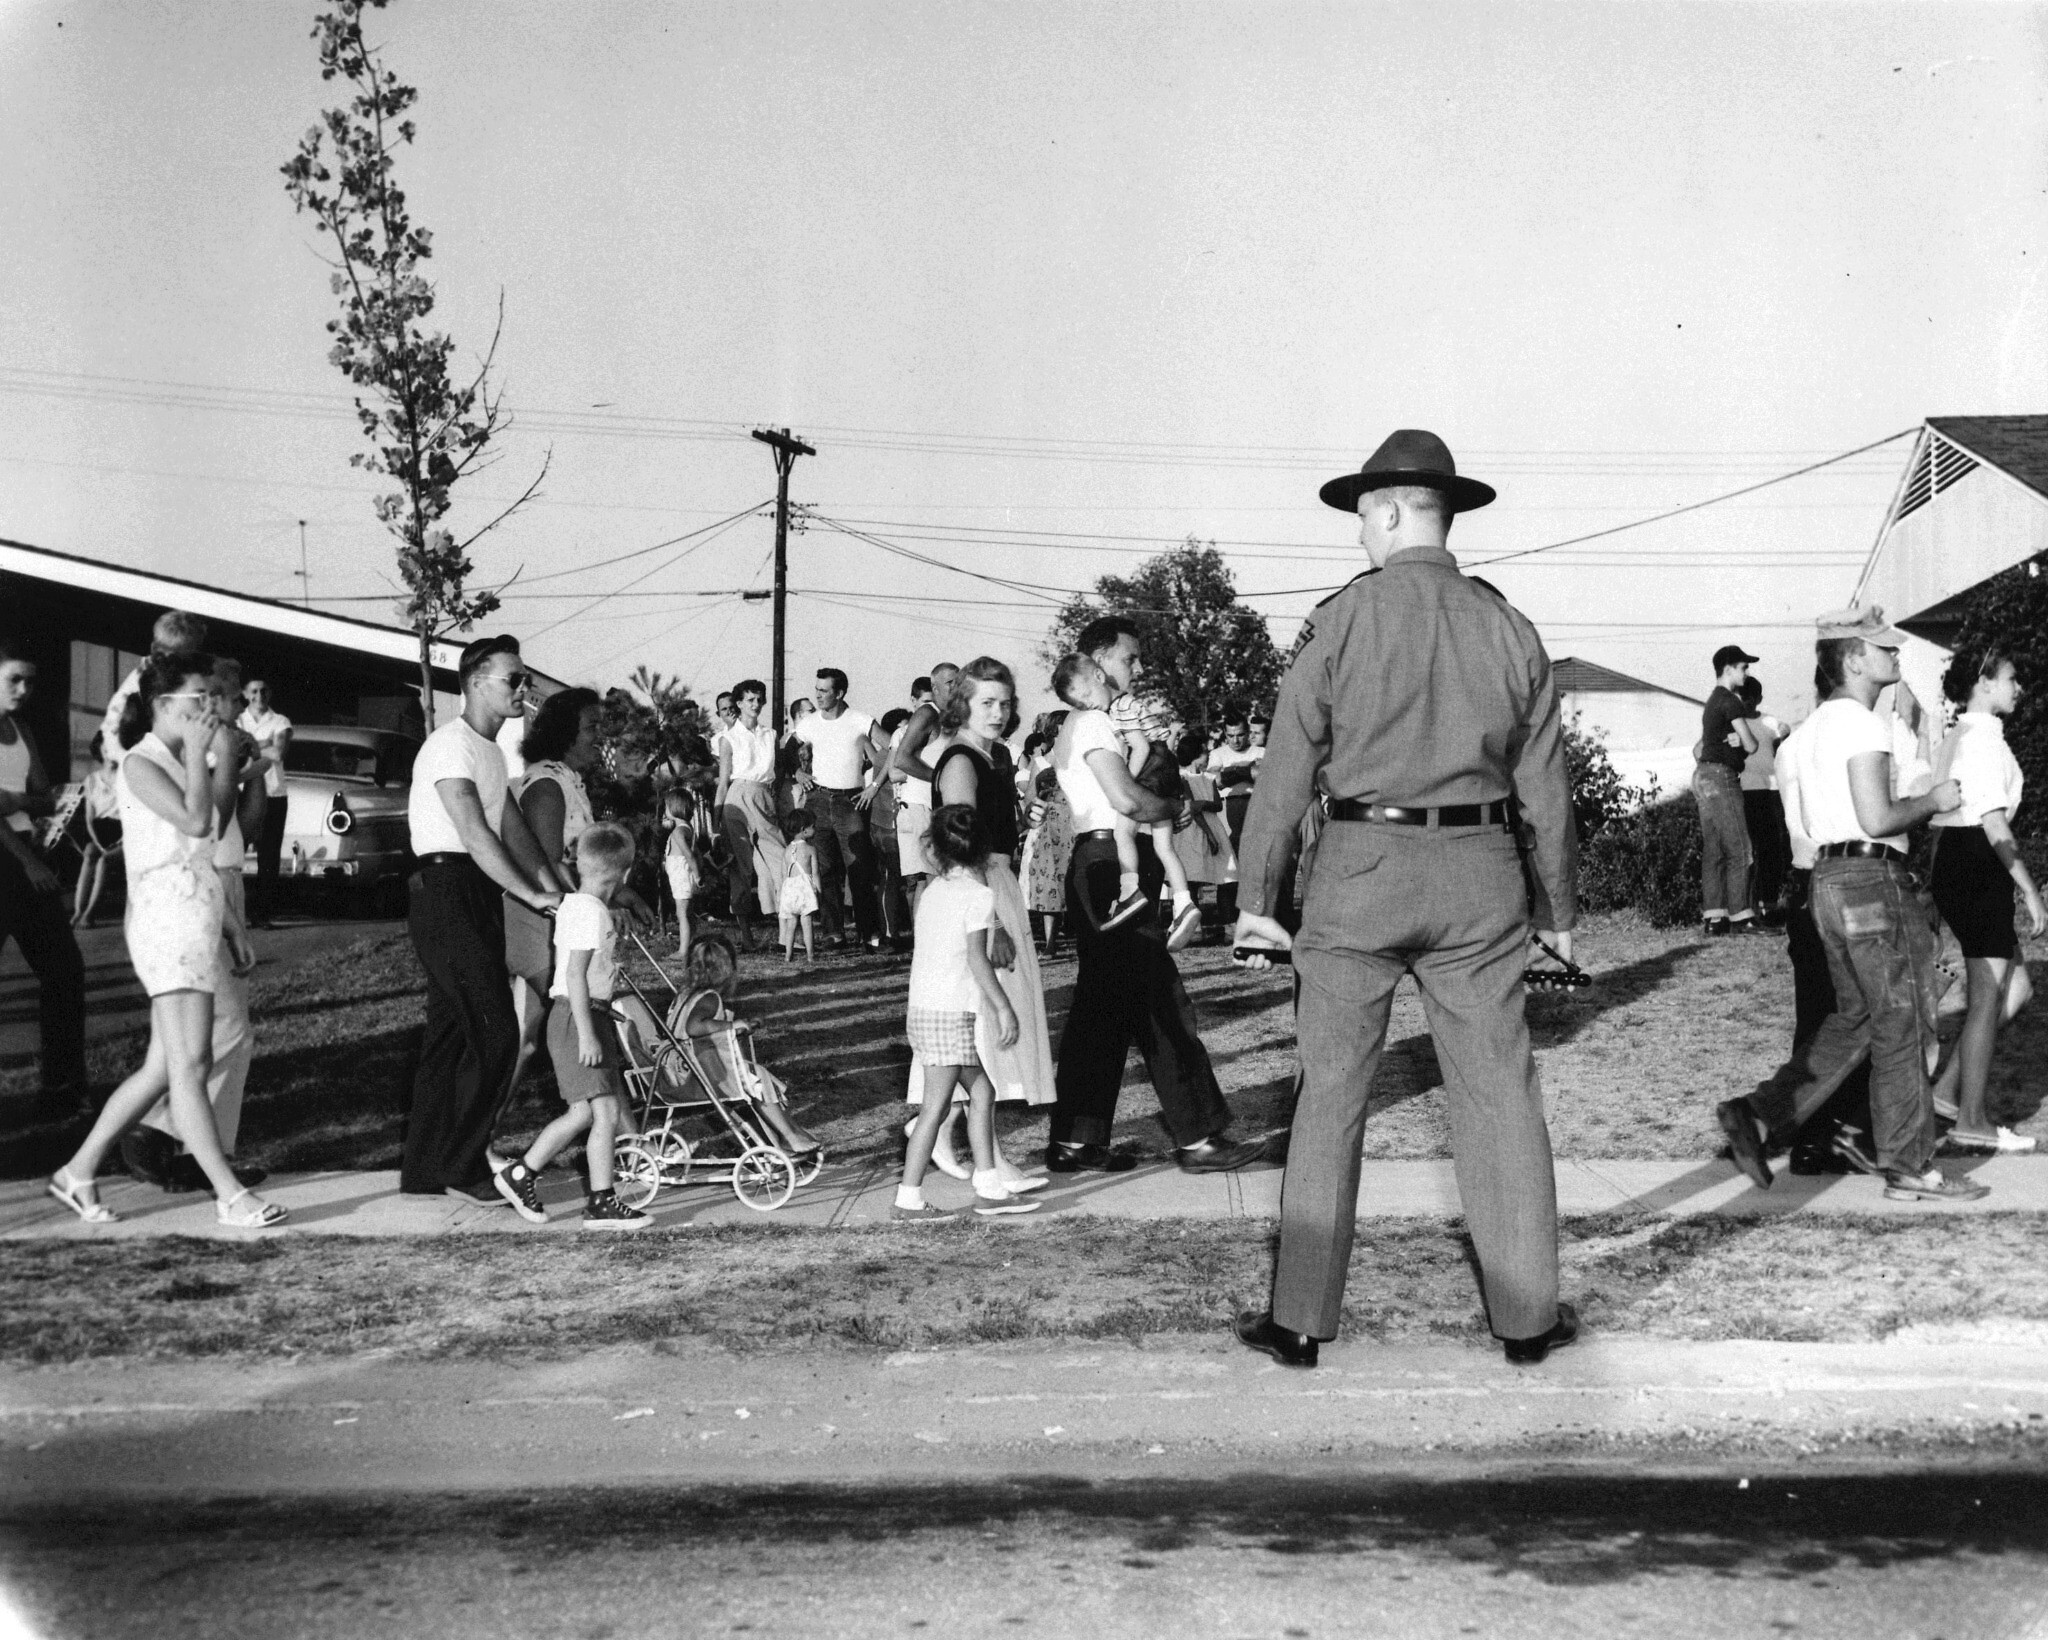 'Crisis' in Levittown, Pennsylvania, when the Black Meyers family moved to town, August 1957 (public domain)